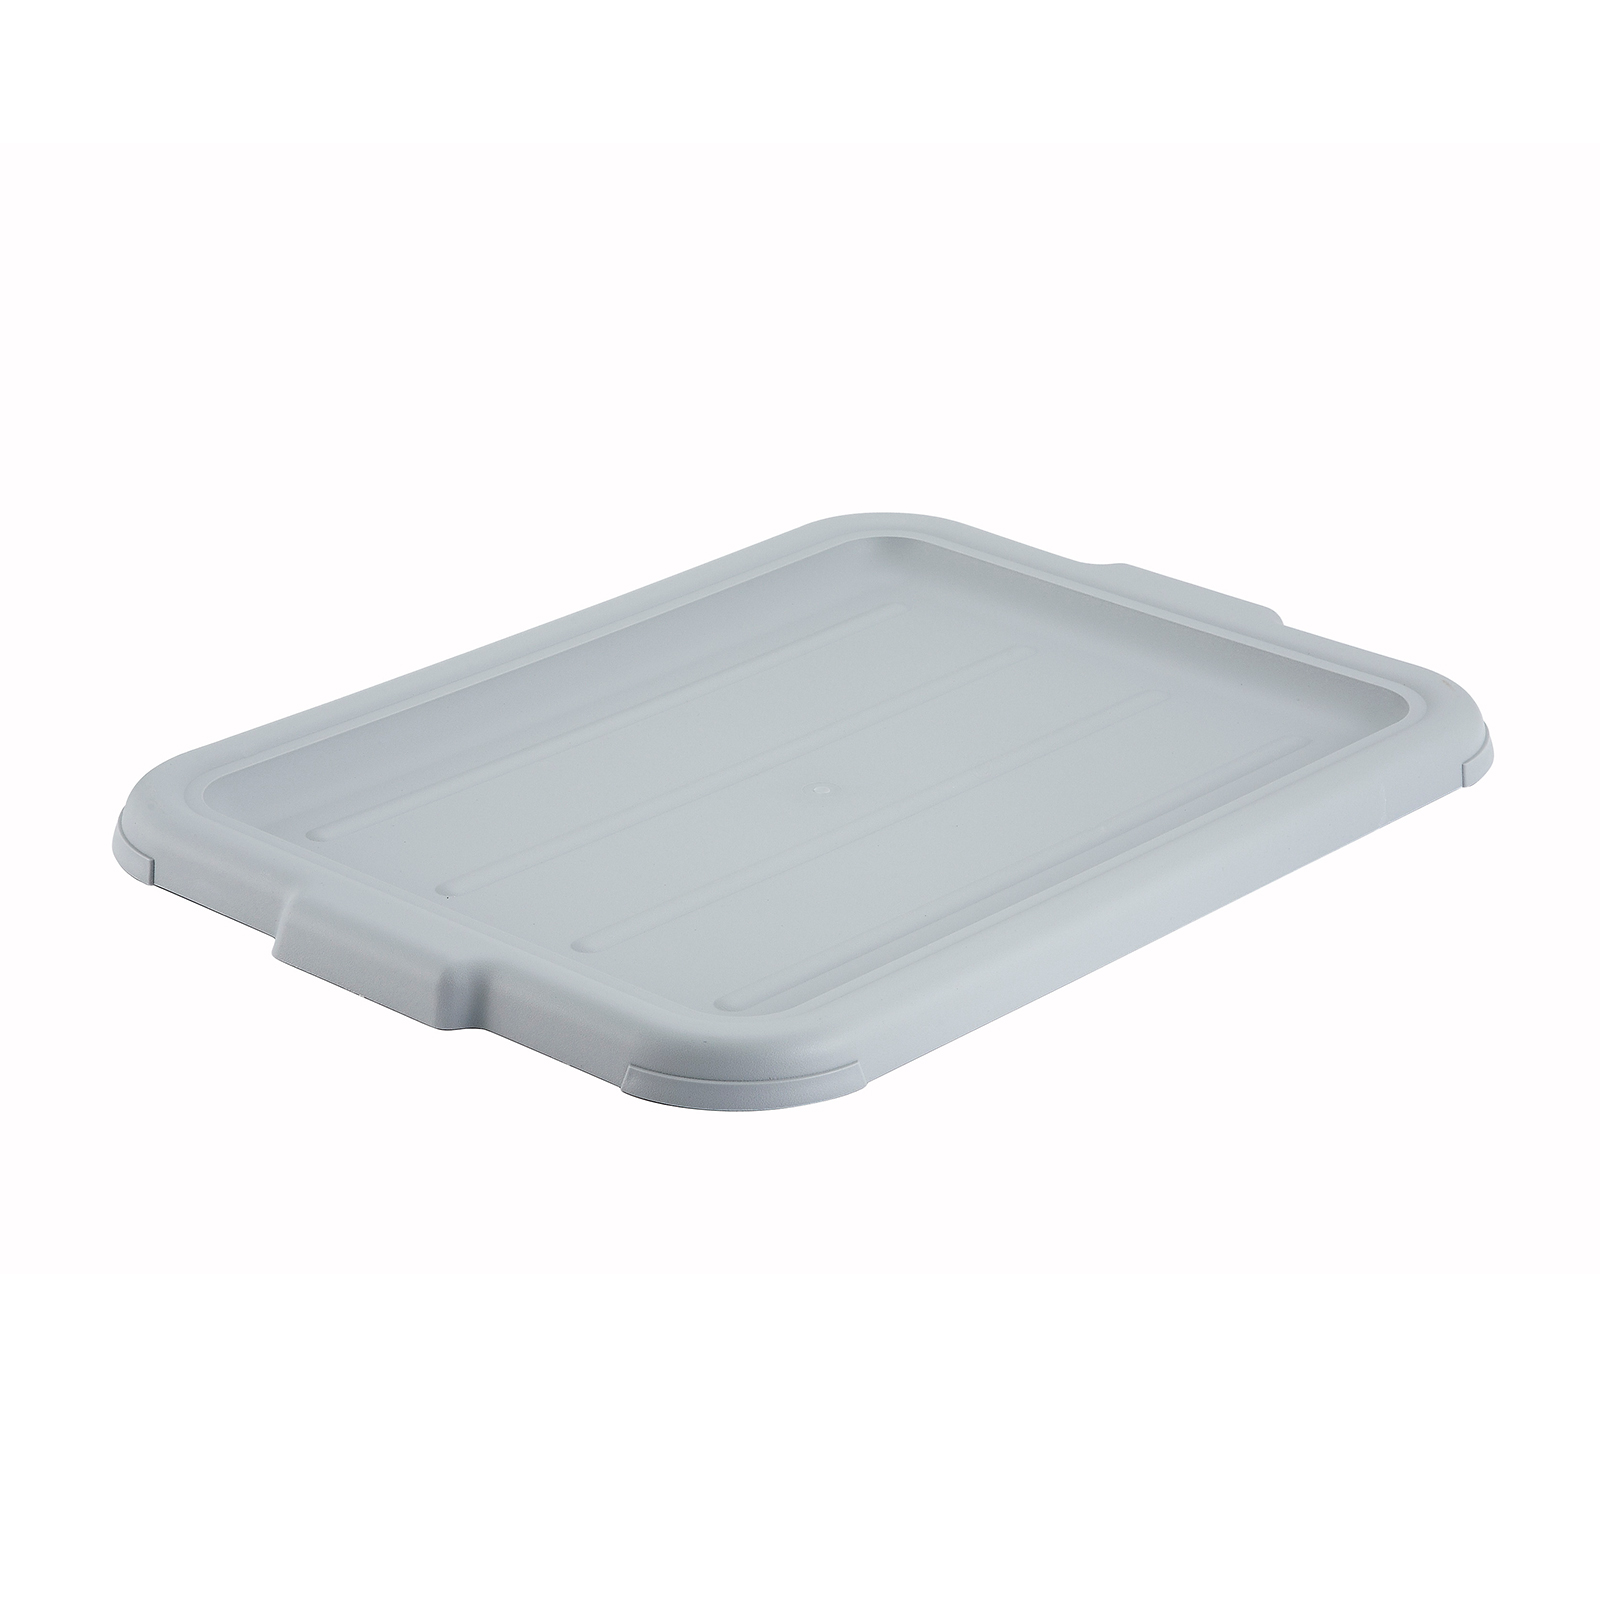 Winco PL-57C bus box / tub cover